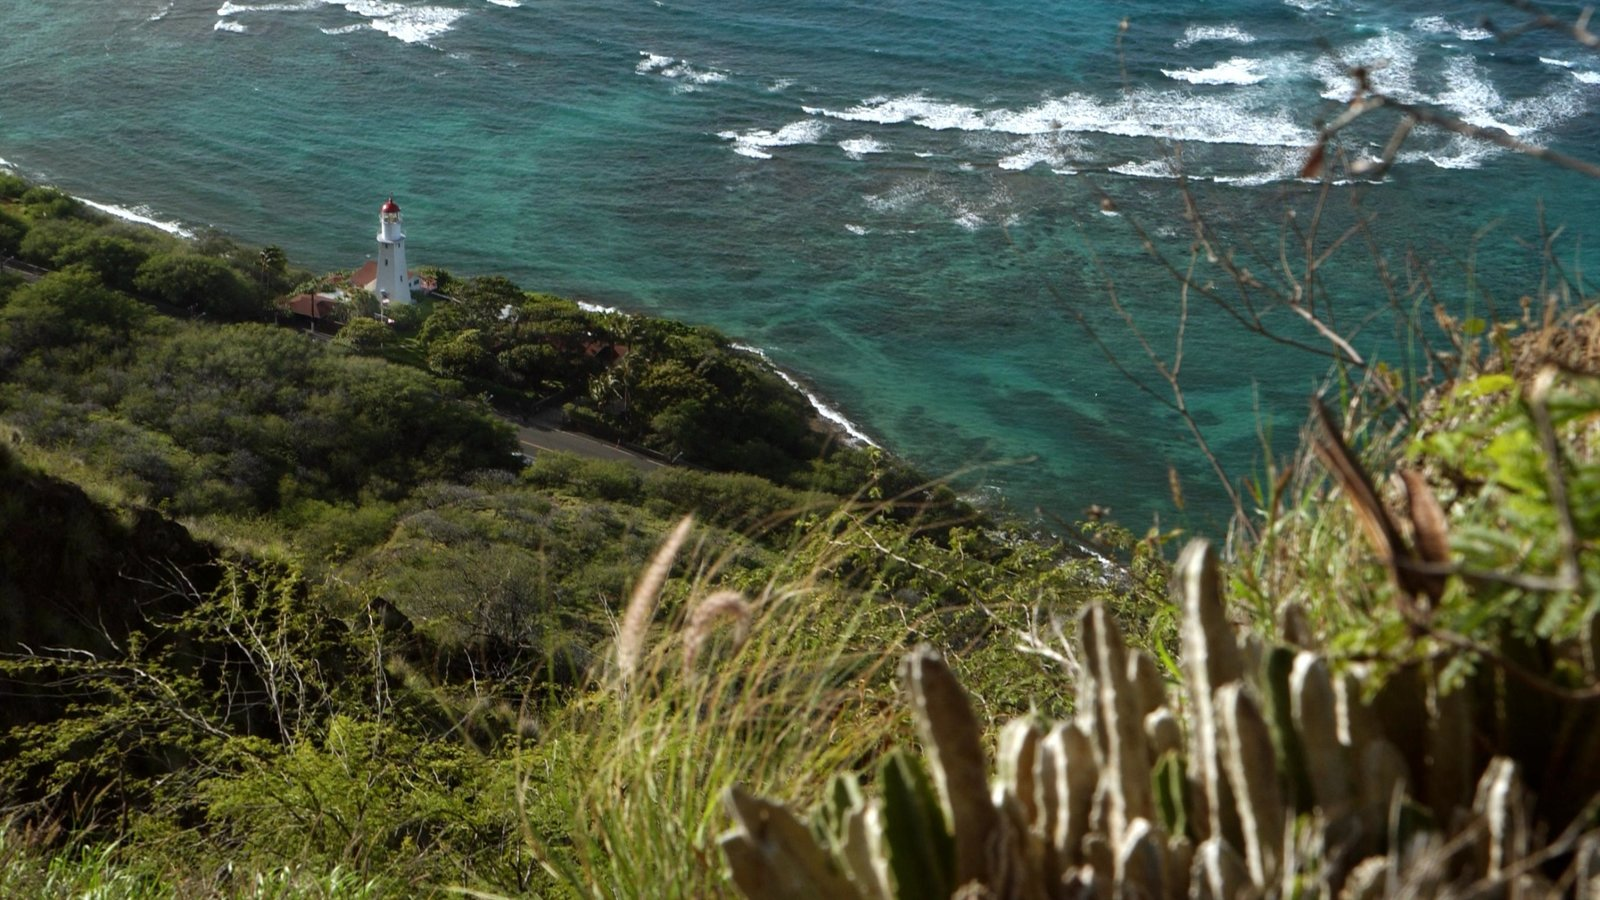 Diamond Head which includes general coastal views, a lighthouse and landscape views